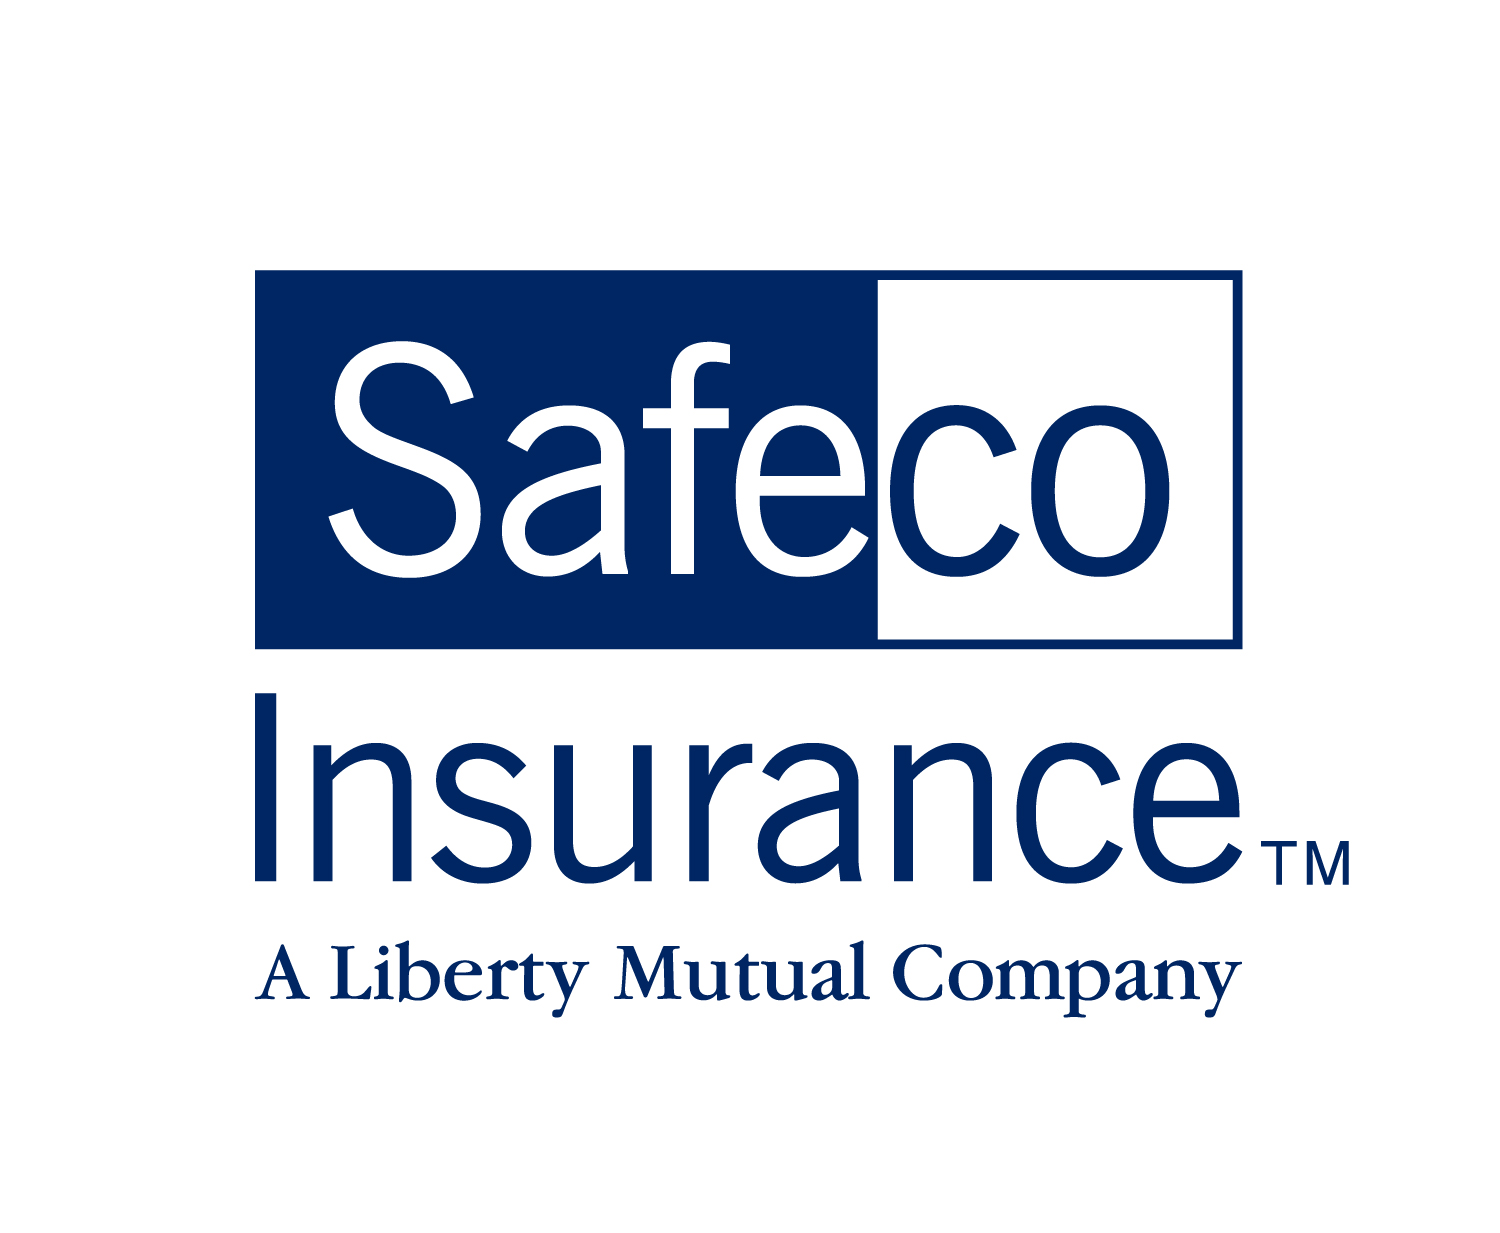 Safeco a Liberty Mutual Company- Insurance with RS Financial Group, LLC -Chris Sumner Memphis Home and Auto Insurance